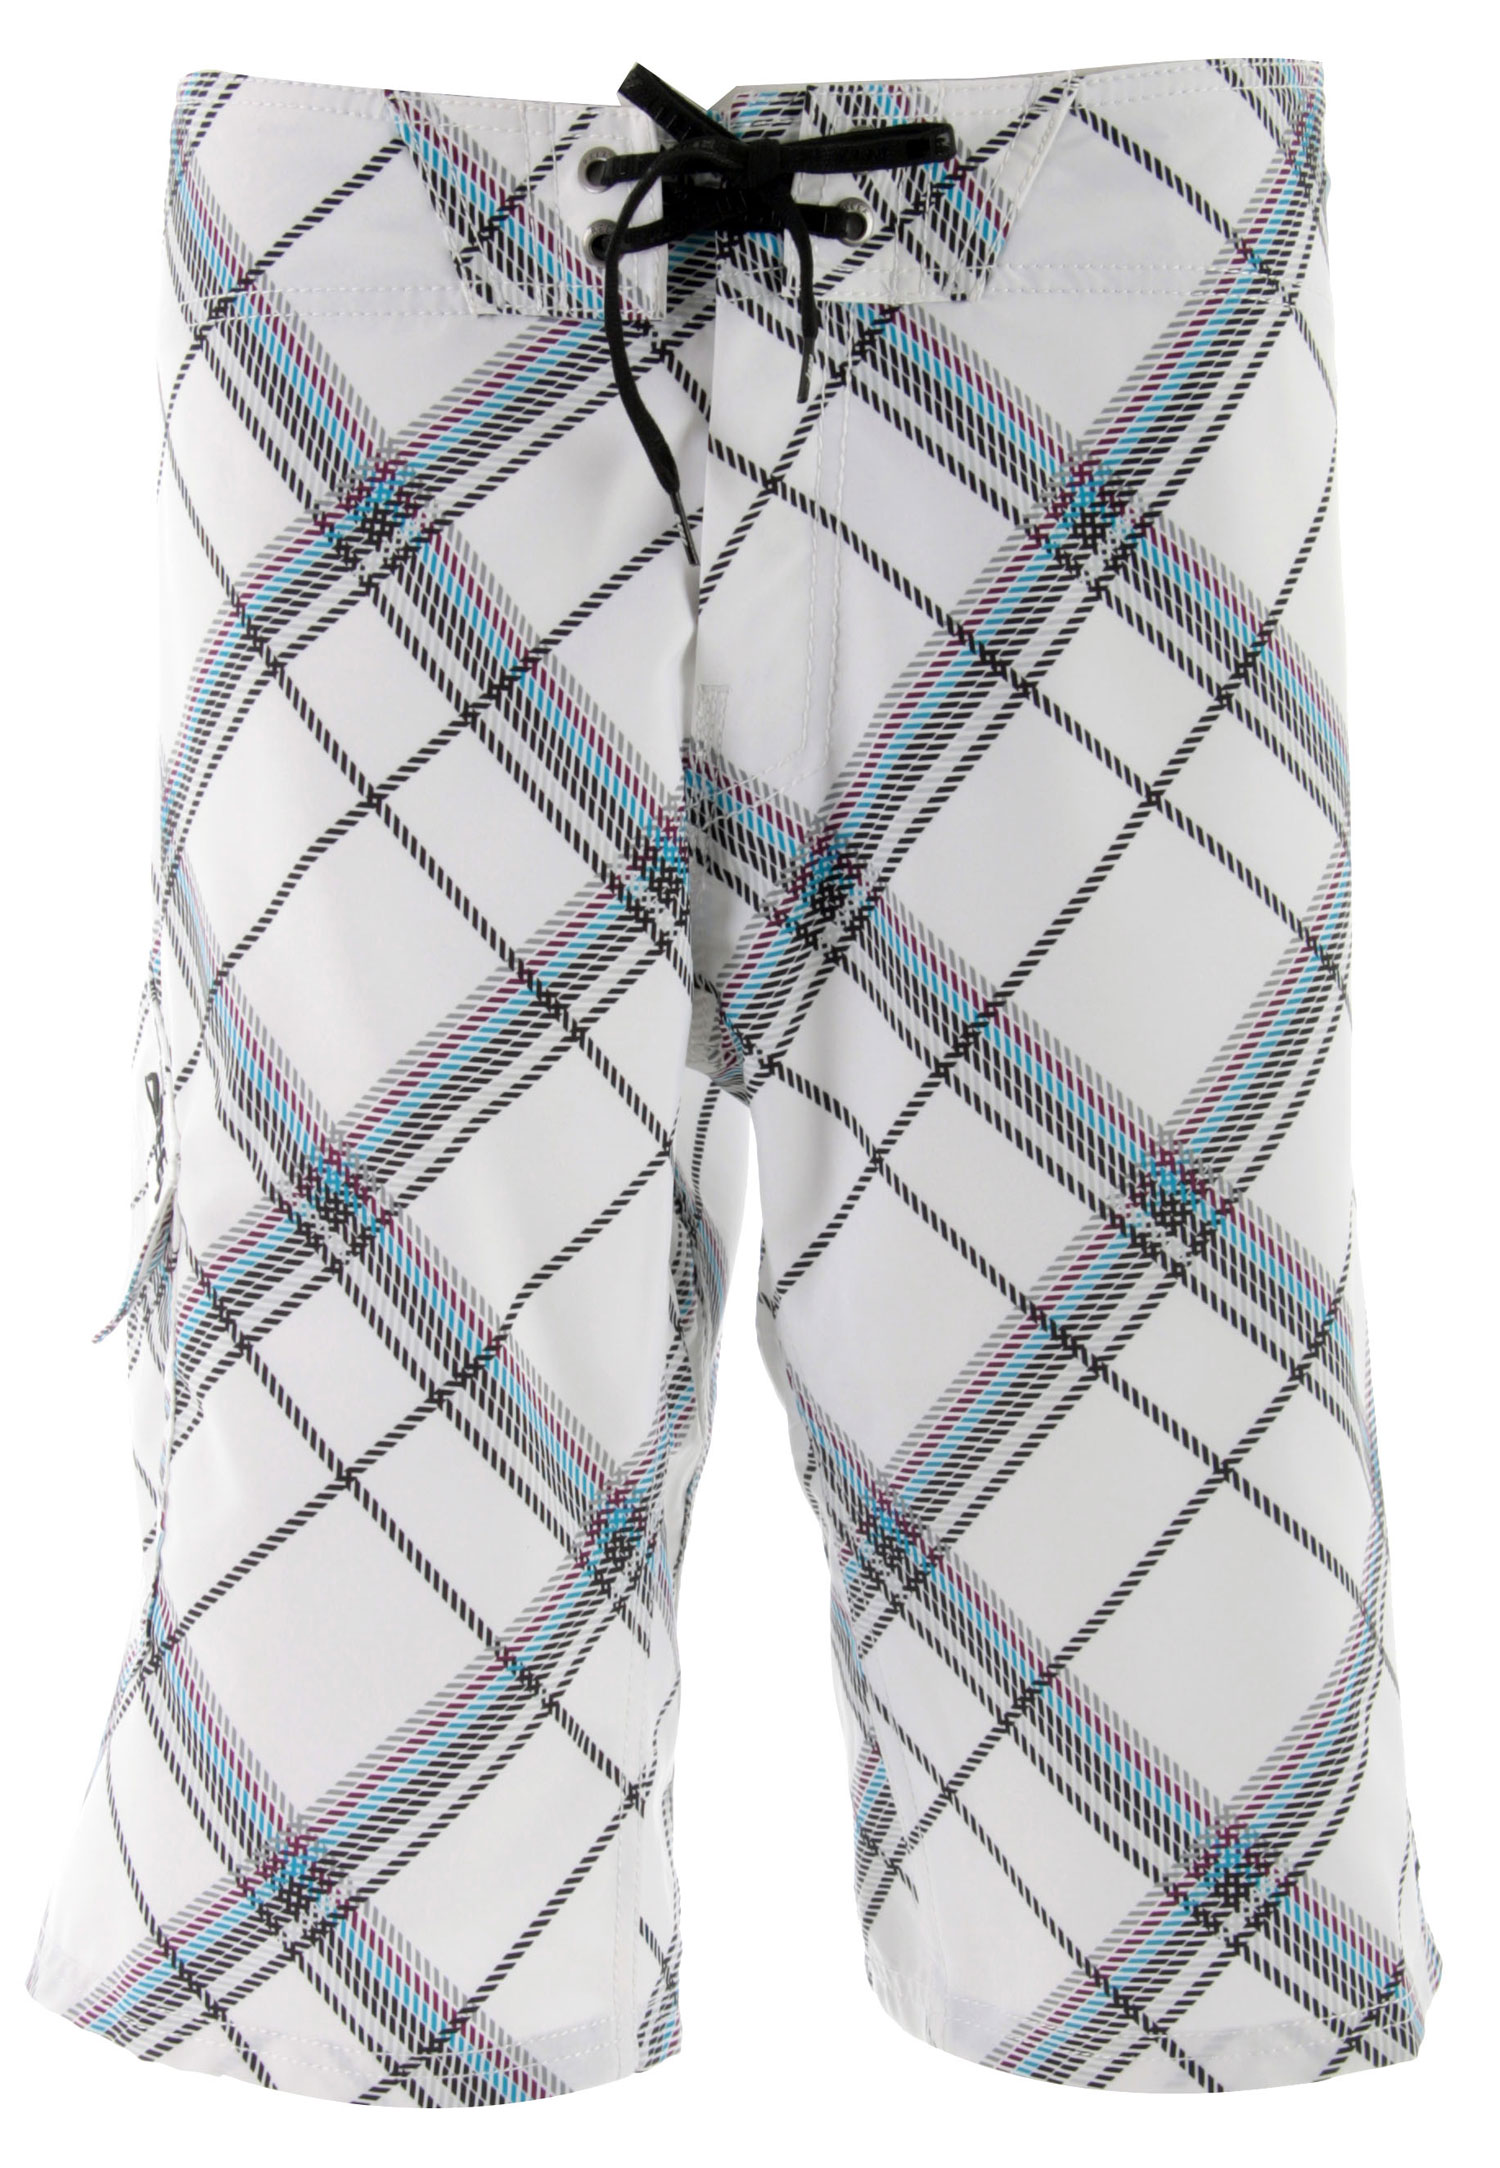 "Surf These new boardshorts from Reef Pier have the perfect length and fit to keep you moving with no constraints. The solid polyester fabric stretches and allows movement in both directions. The bias-design plaid print is attractive and the detailing on this items really makes it a standout. A drawstring waistband that is cleverly designed for maximum comfort, reinforced stitching, and custom eyelets and logo embroider makes these shorts the one's you'll be enjoying for many seasons to come.Key Features of the Reef Pier Boardshorts: 2 Way Pro Stretch Fabric 100% Polyester All Over Plaid Print Ridiculously Comfortable Inside Waistband Detail Woven Label On Left Leg Embroidery On Right Pocket Flap Custom Logo Eyelets 22"" Outseam - $51.95"